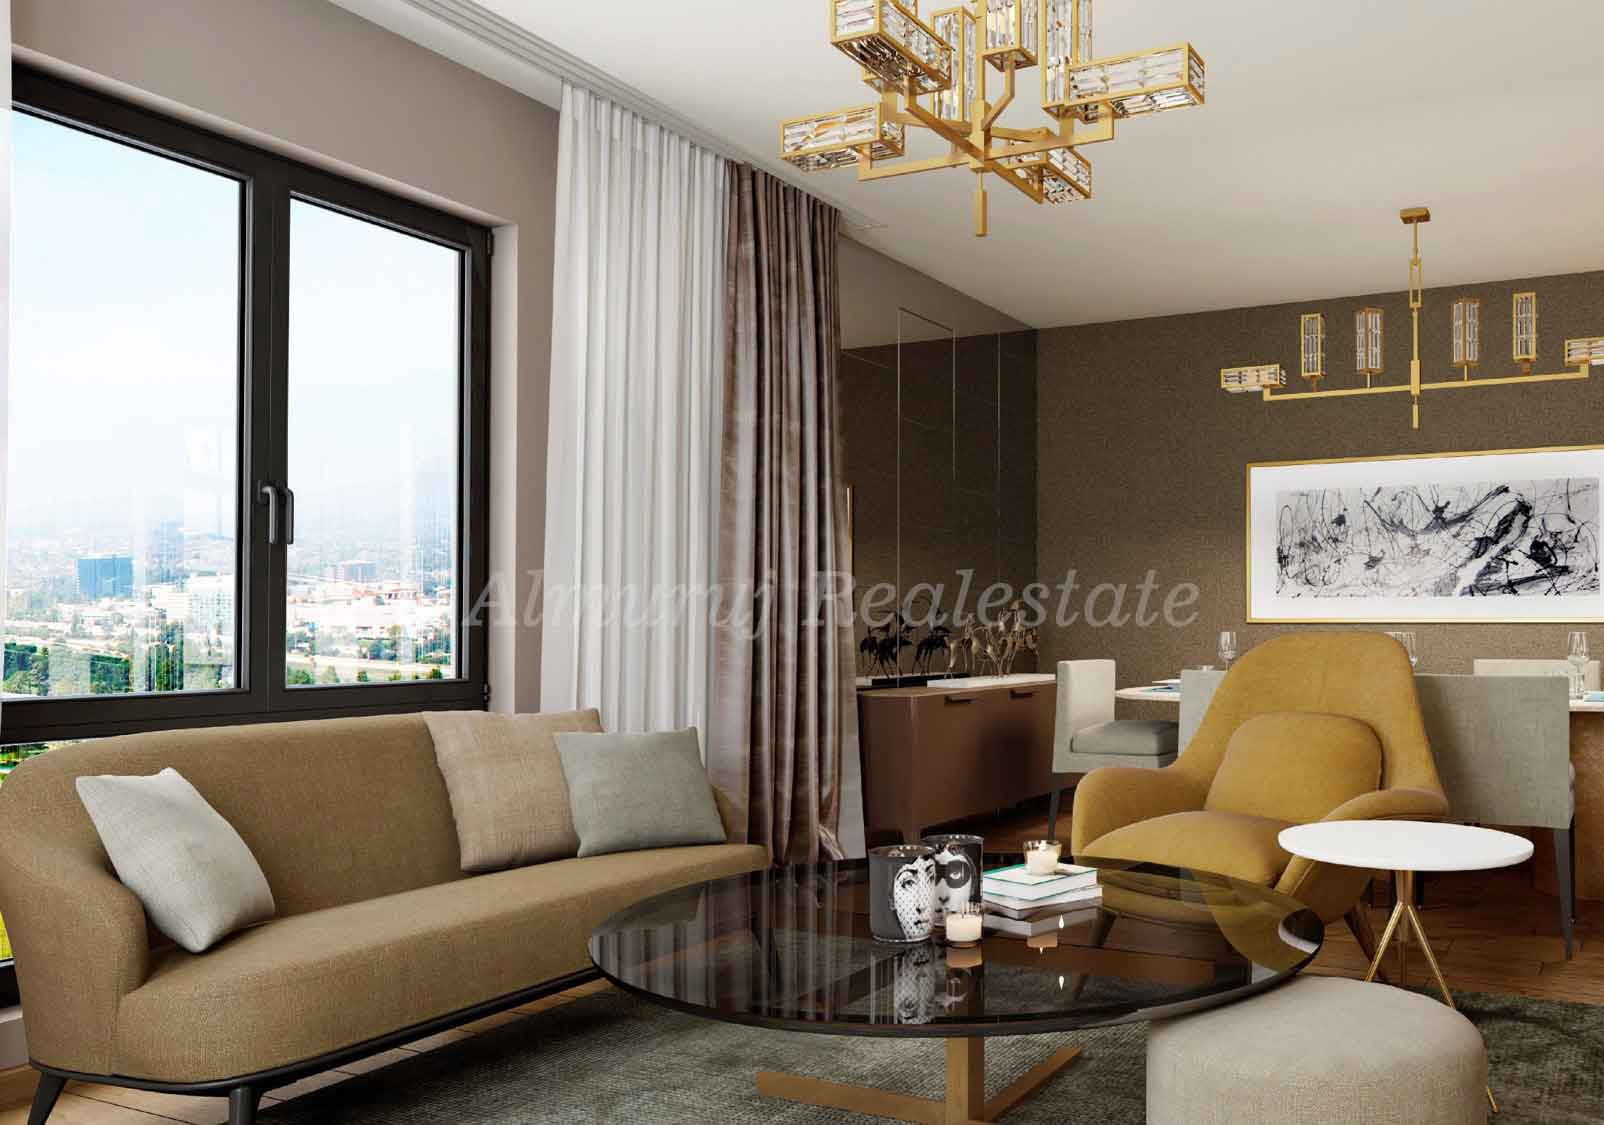 Sell Apartment - Istanbul - 67 meter - 85000 United States dollar